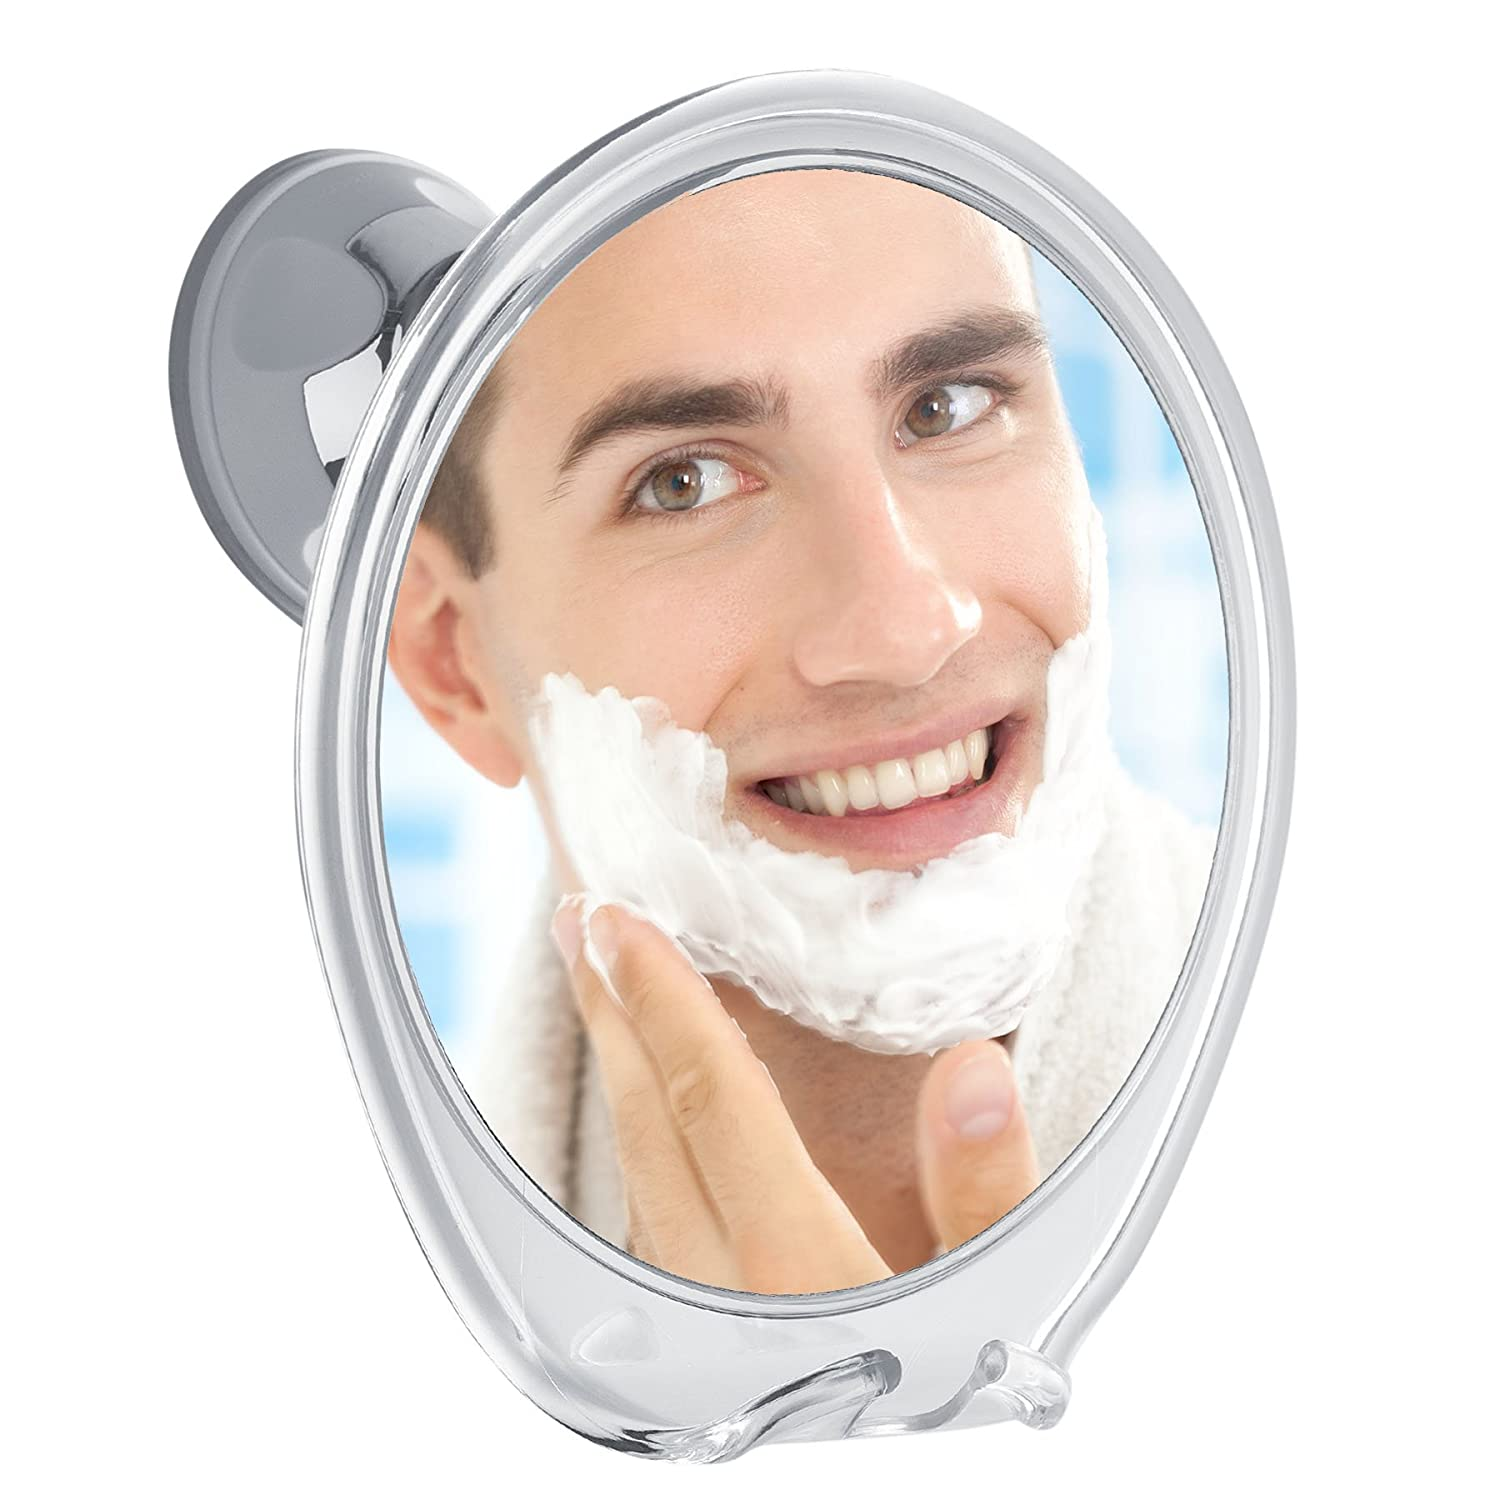 Fogless Shower Mirror with Razor Hook for A Perfect No Fog Shaving, 360 Degree Rotating for Easy Mirrors Viewing, Strong Power Lock Suction Cup Will Not Fall, Ideal for Home and Traveling! M01-615NV